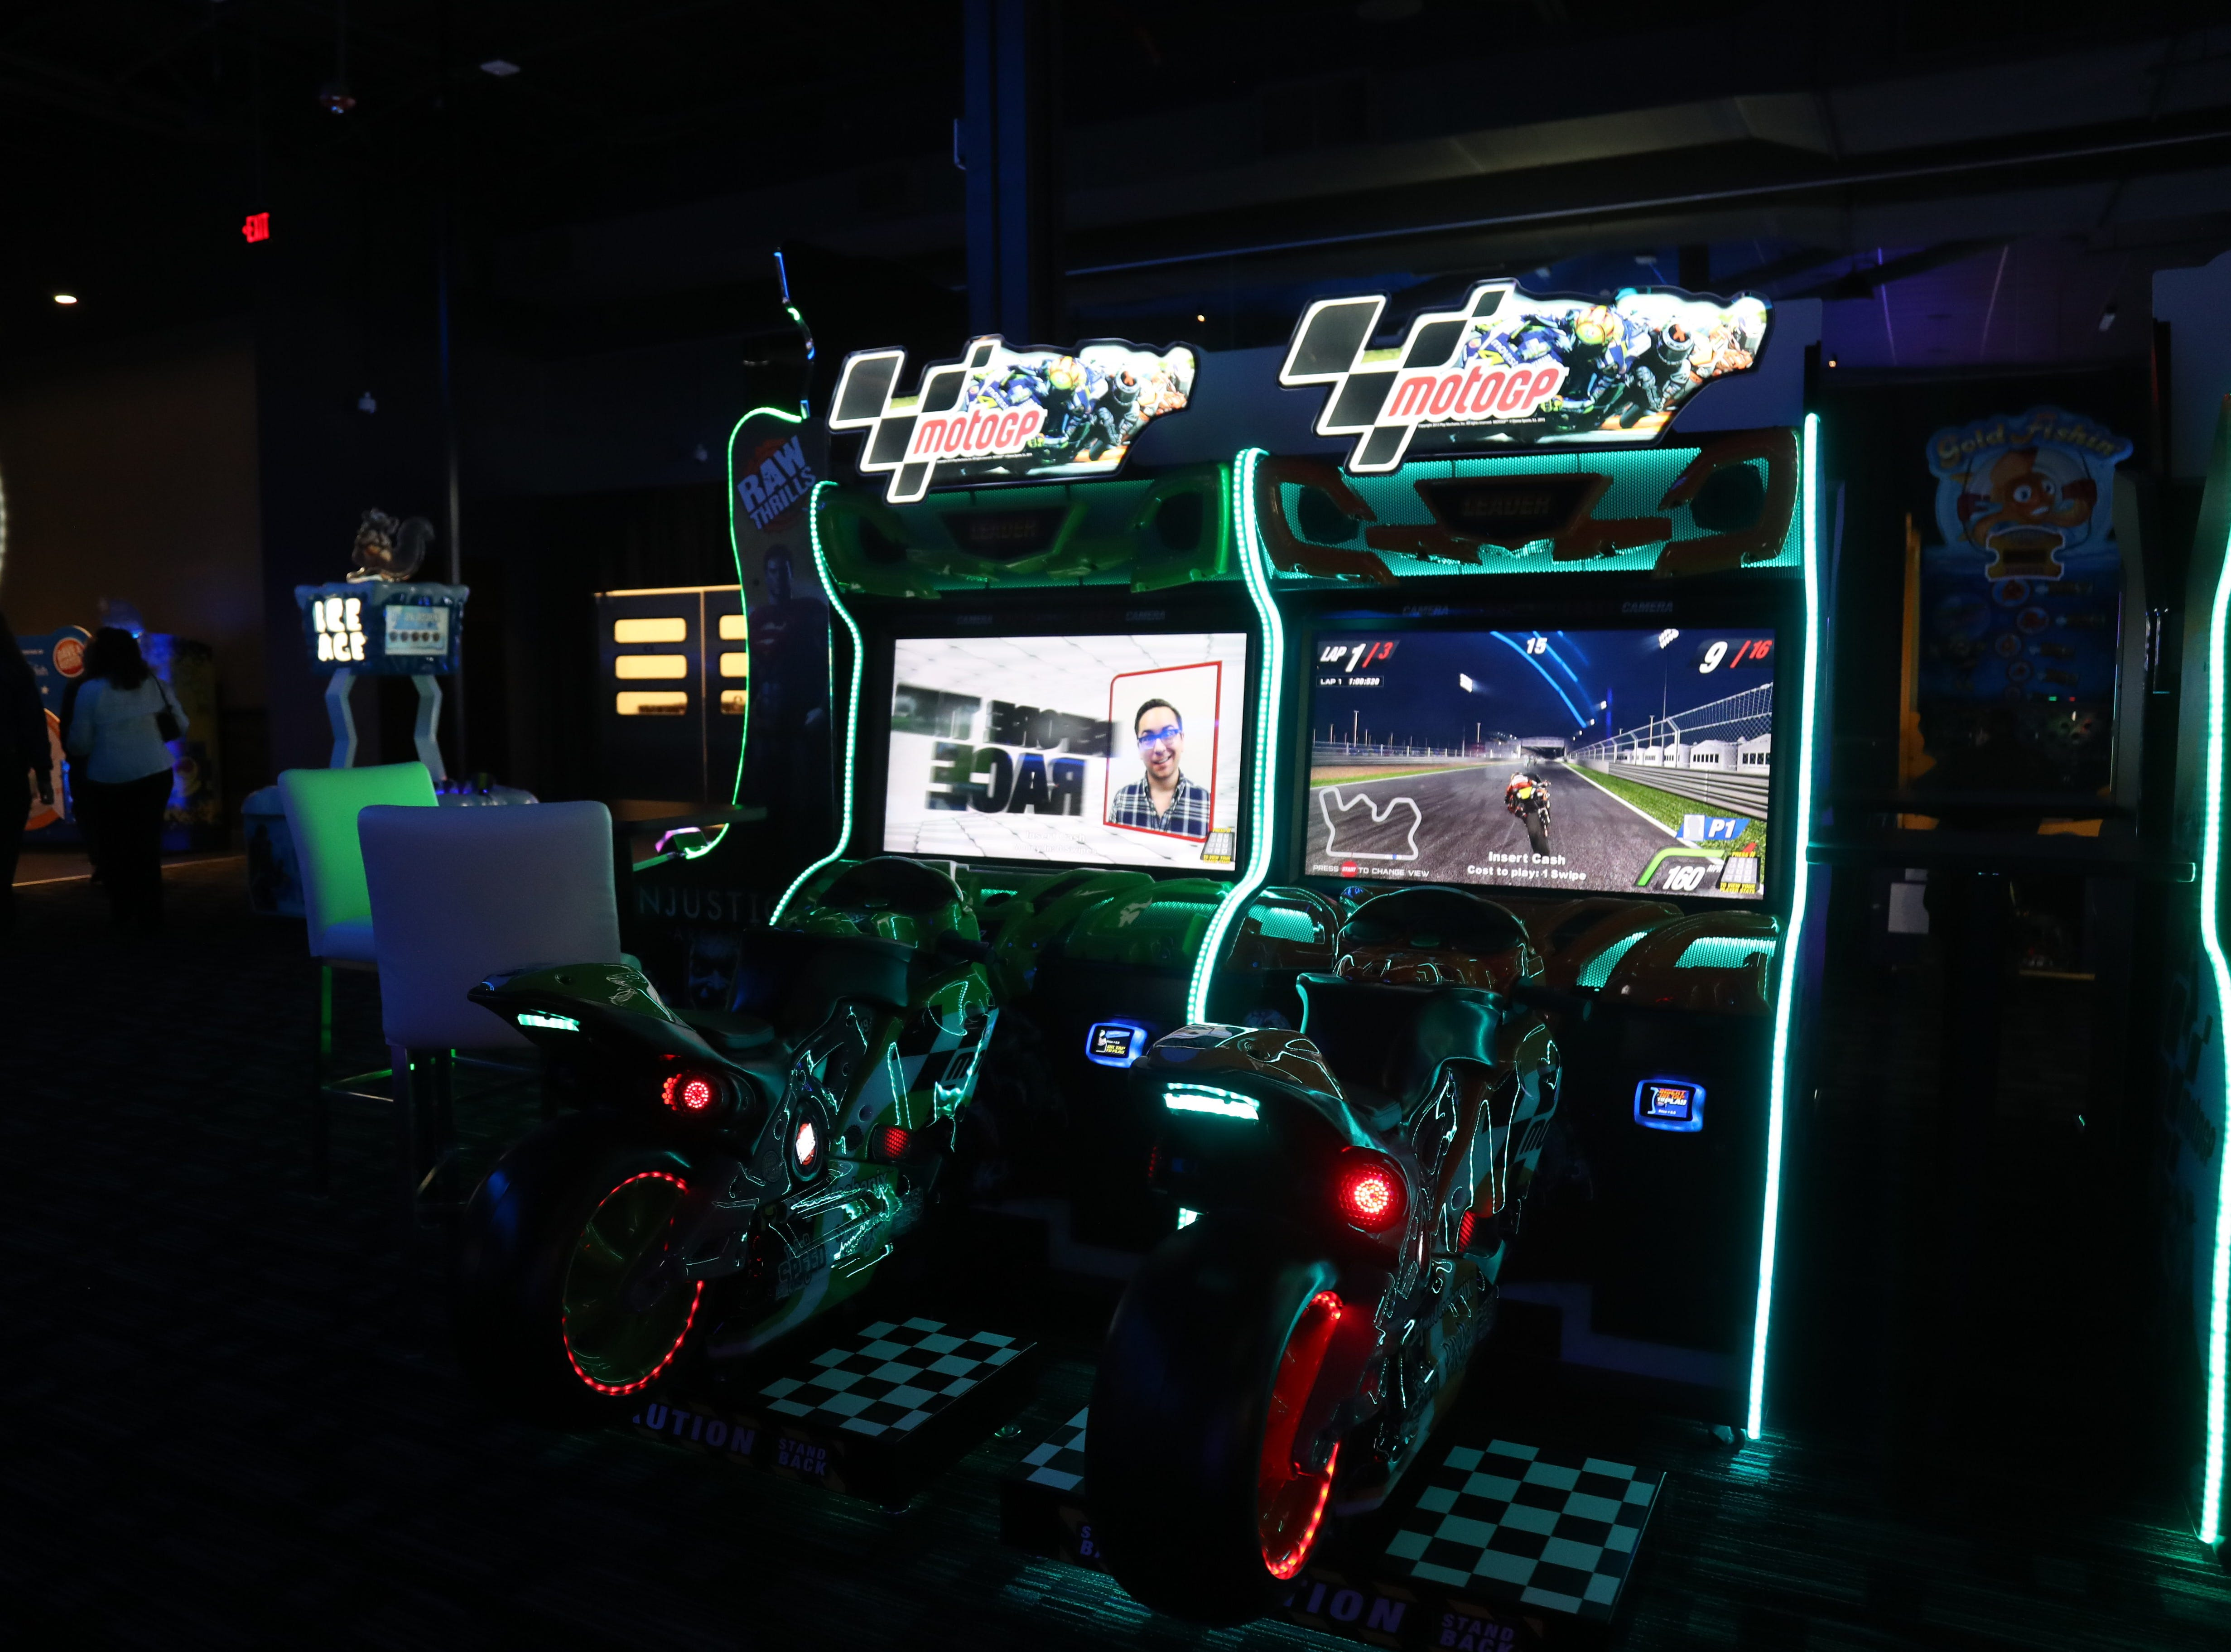 Dave & BusterÕs at Bell Tower Shops has 40,000 square feet of entertainment; chef-crafted food, inventive drinks, hundreds of the newest arcade games and state-of-the-art sports bar. They plan to open April 8th.